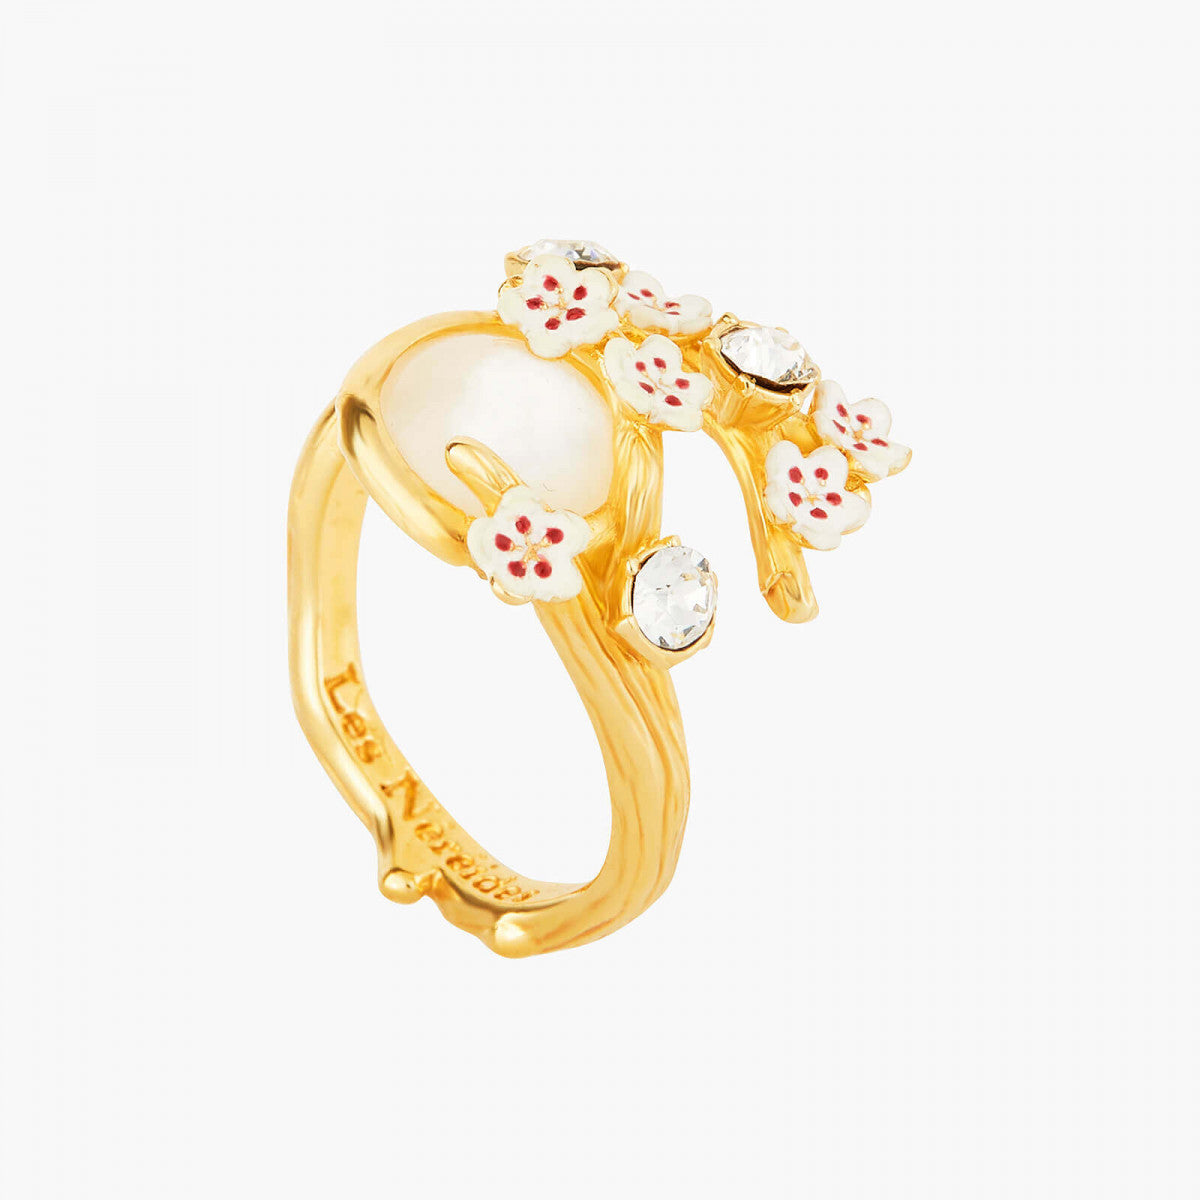 Japanese Cherry Blossom and Branches Adjustable Ring